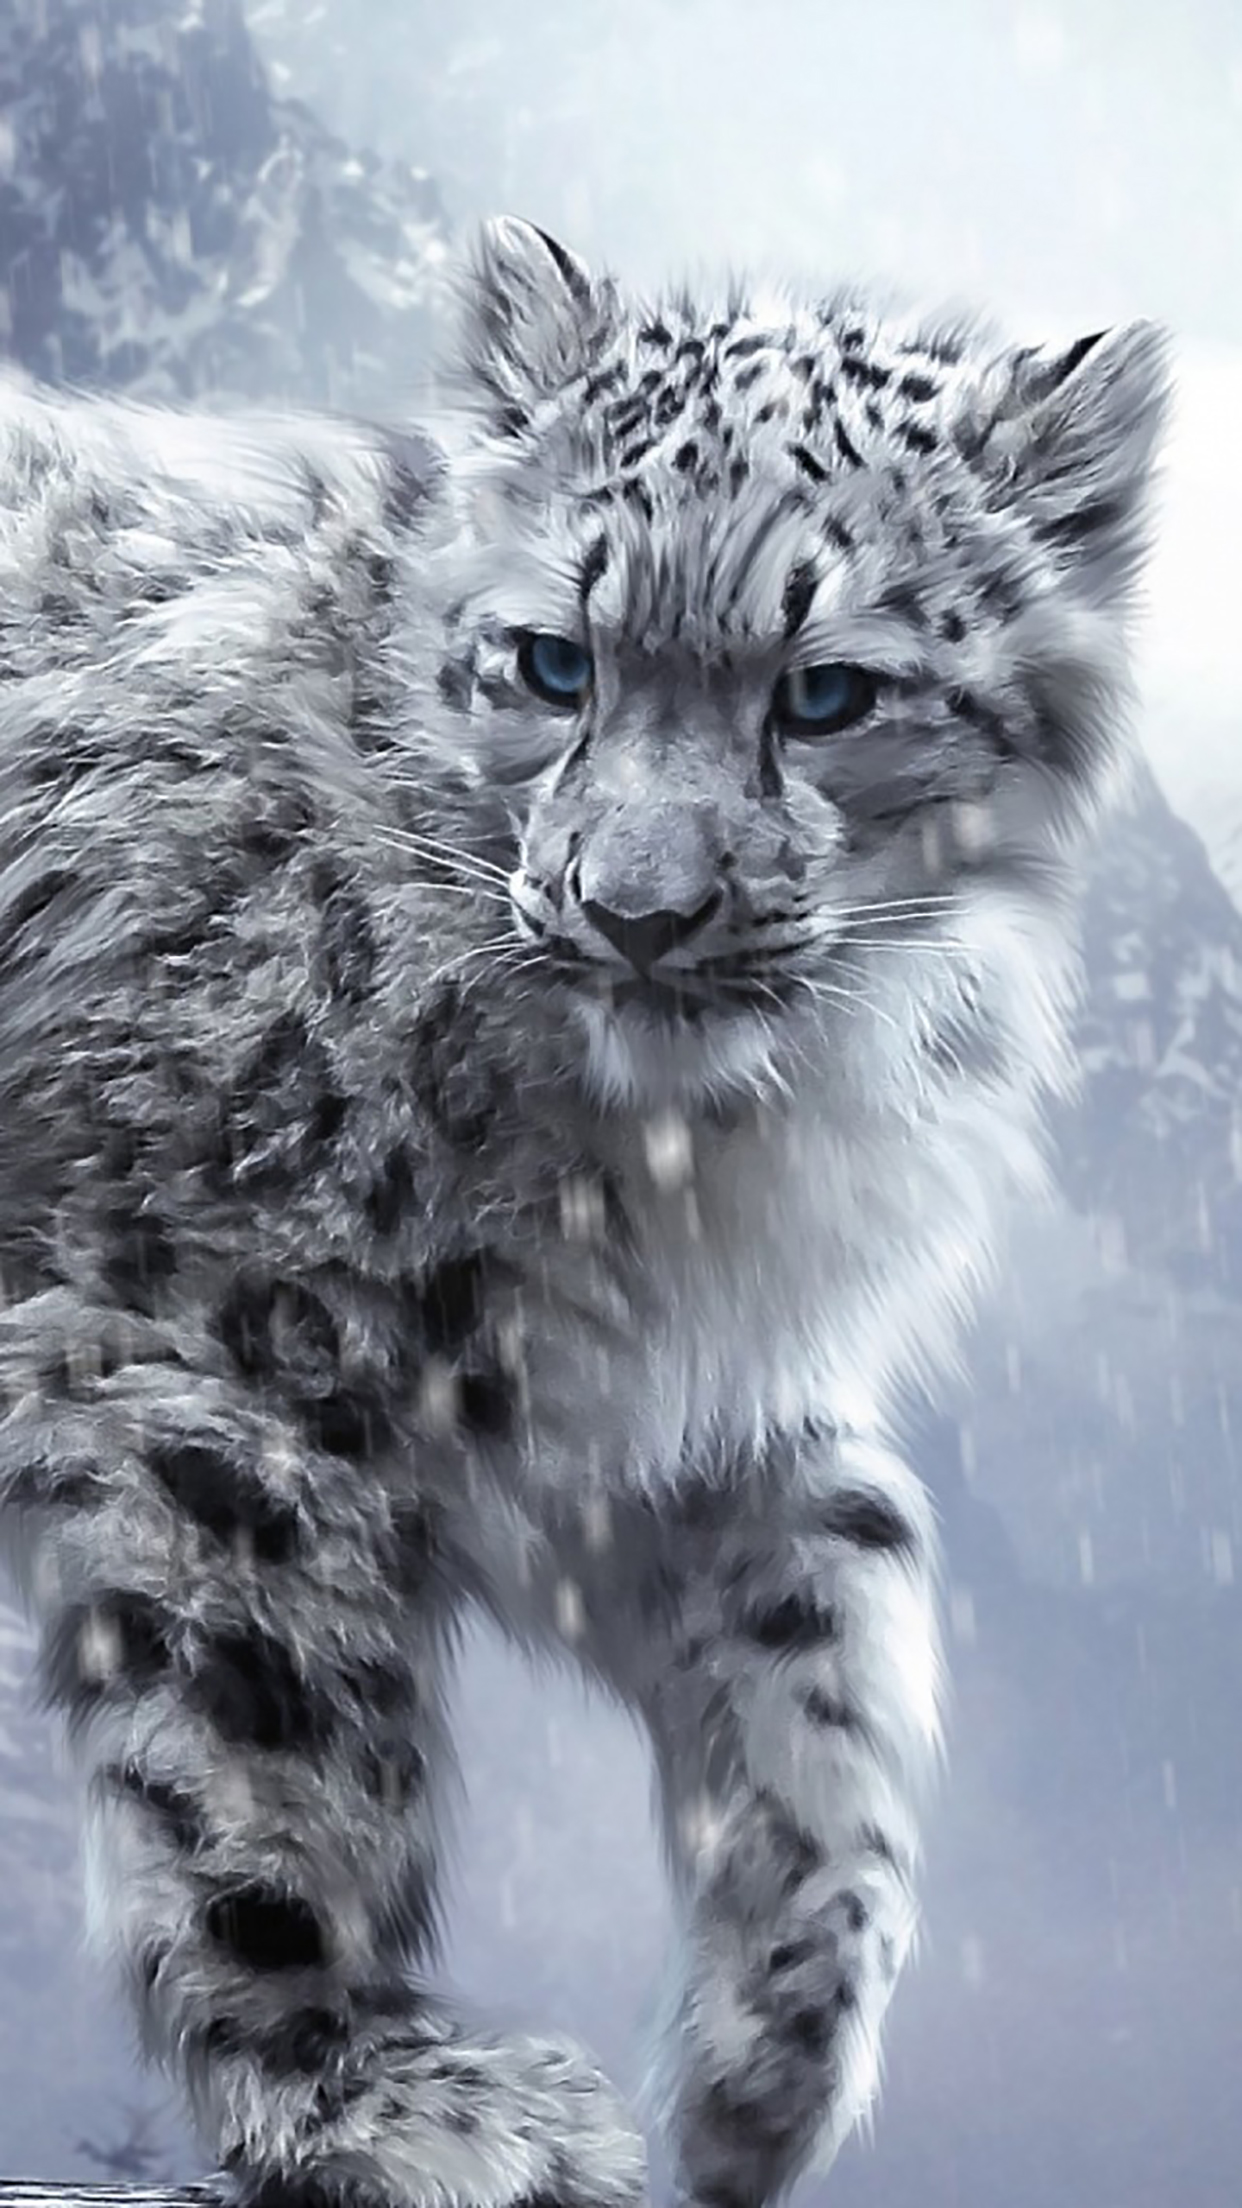 Snow animals leopard wallpaper for iphone x 8 7 6 - Phone animal wallpapers ...